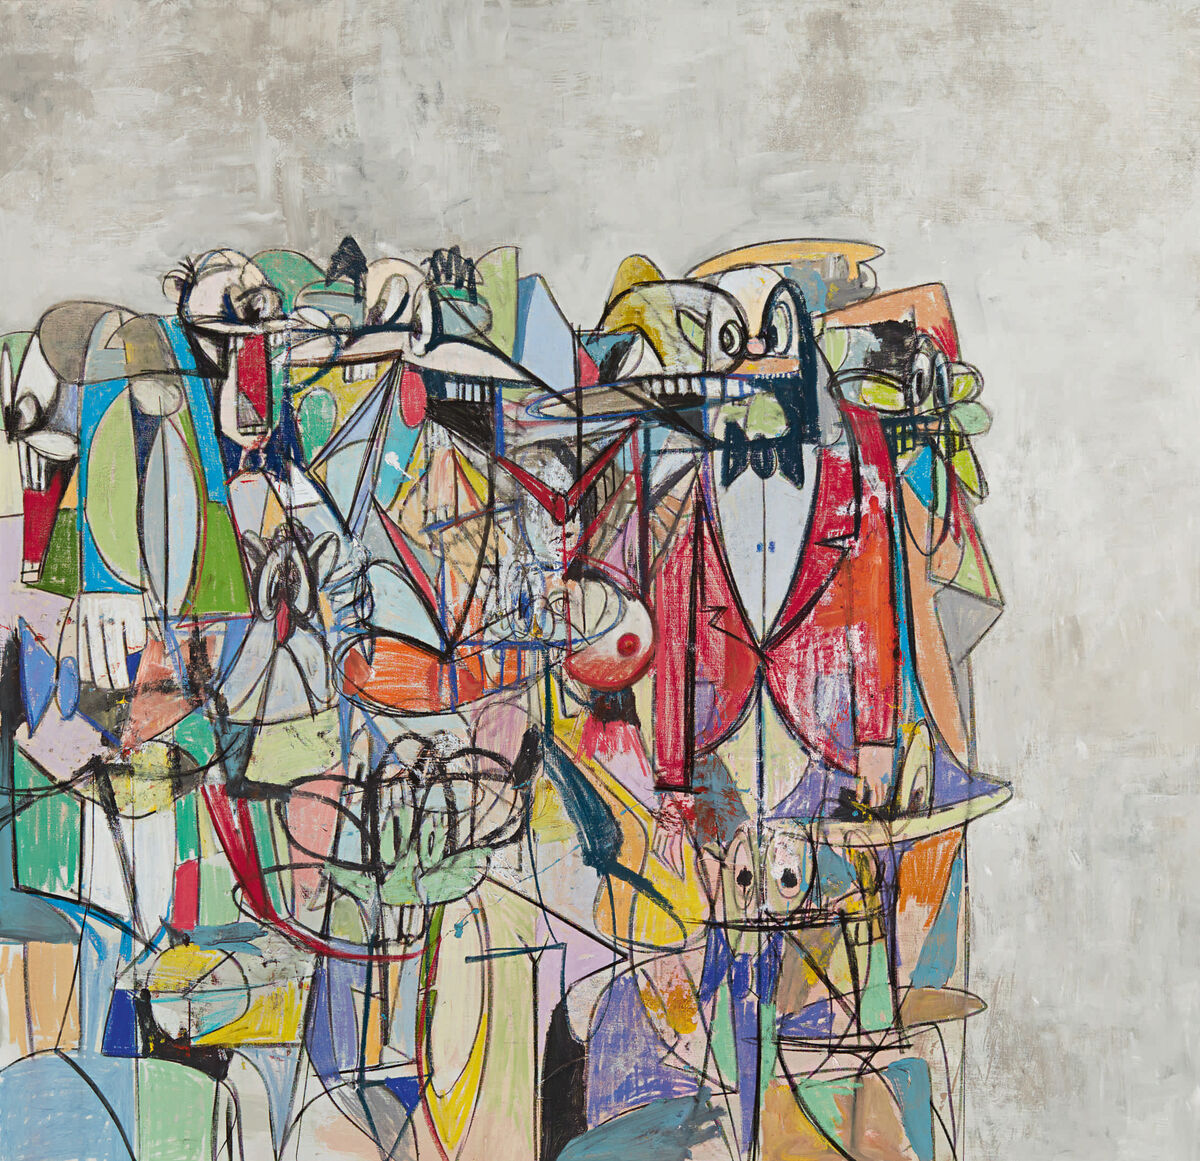 George Condo, Compression IV, 2011. Courtesy of Sotheby's.